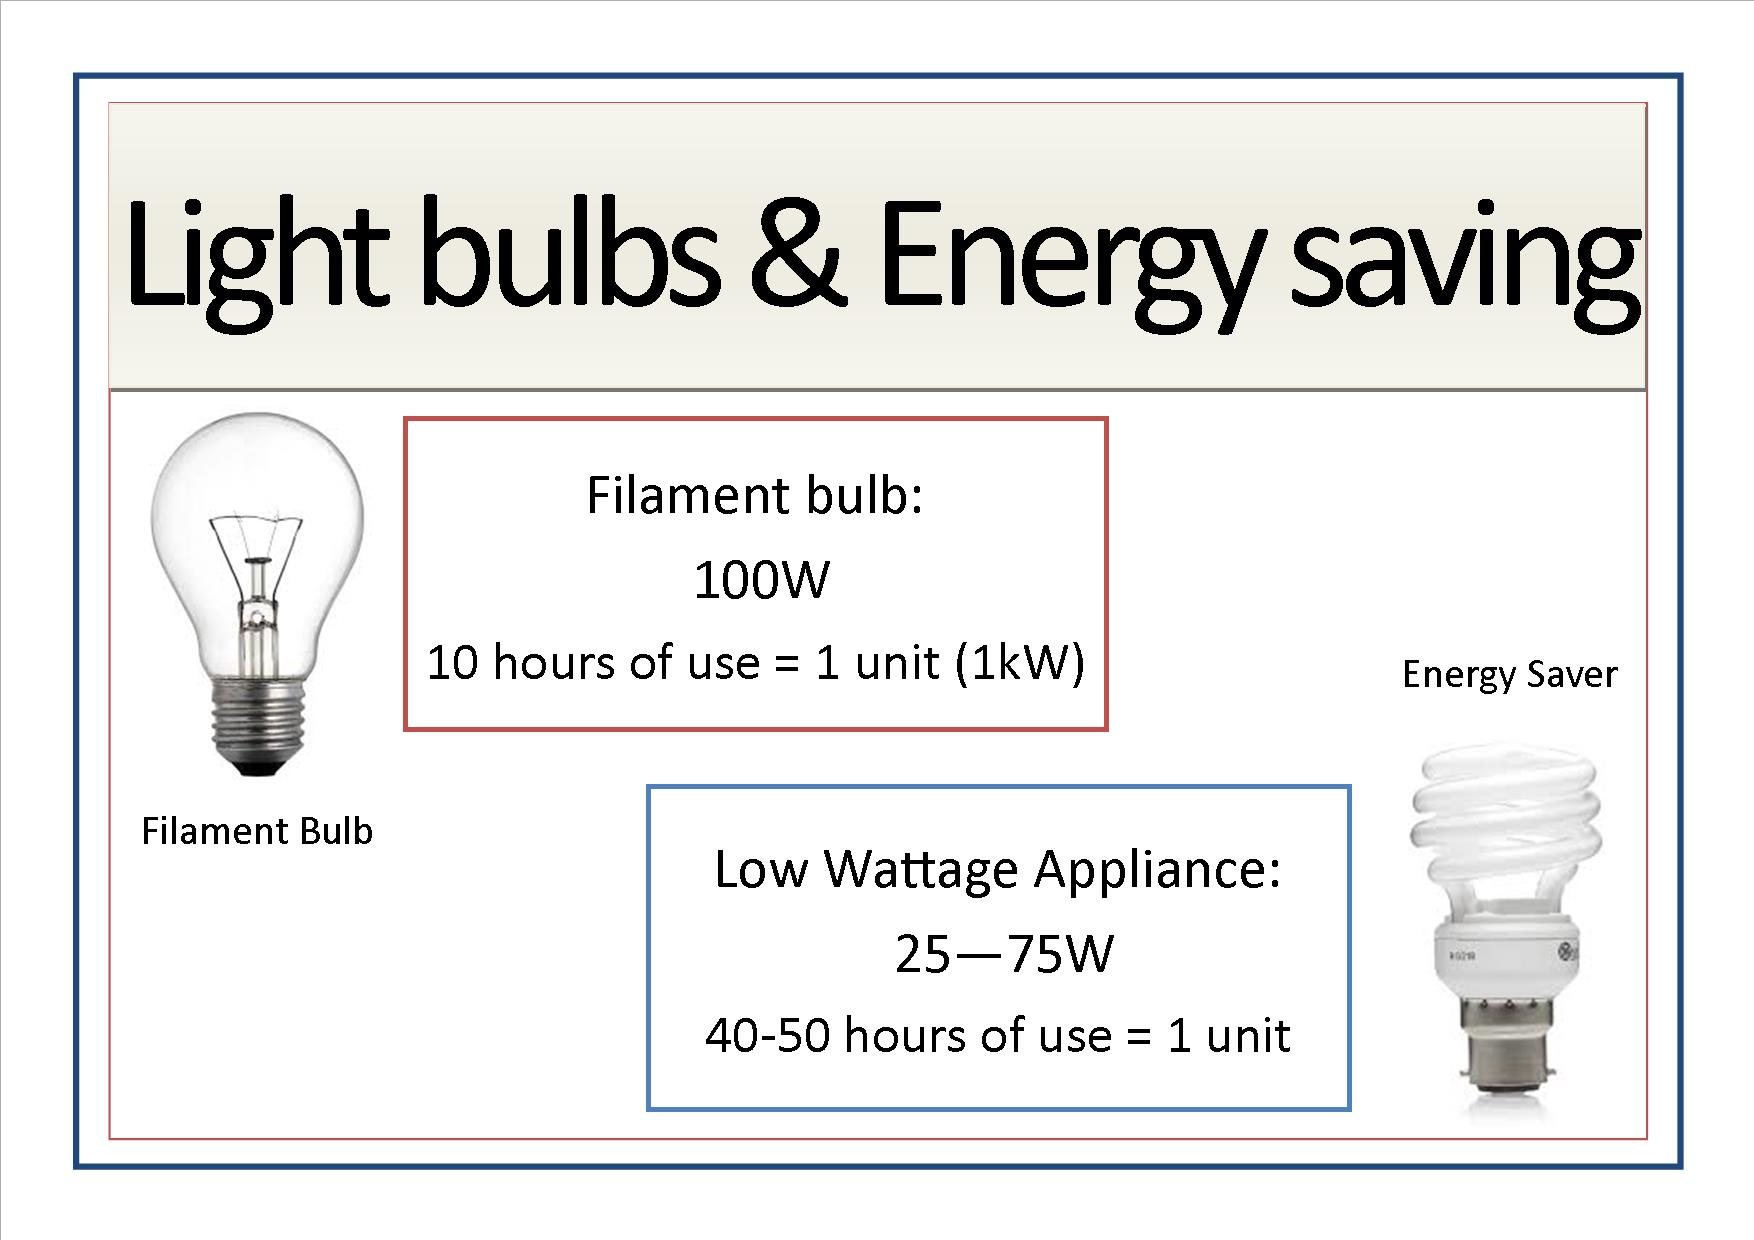 Appliance signs edit4 - lightbulbs